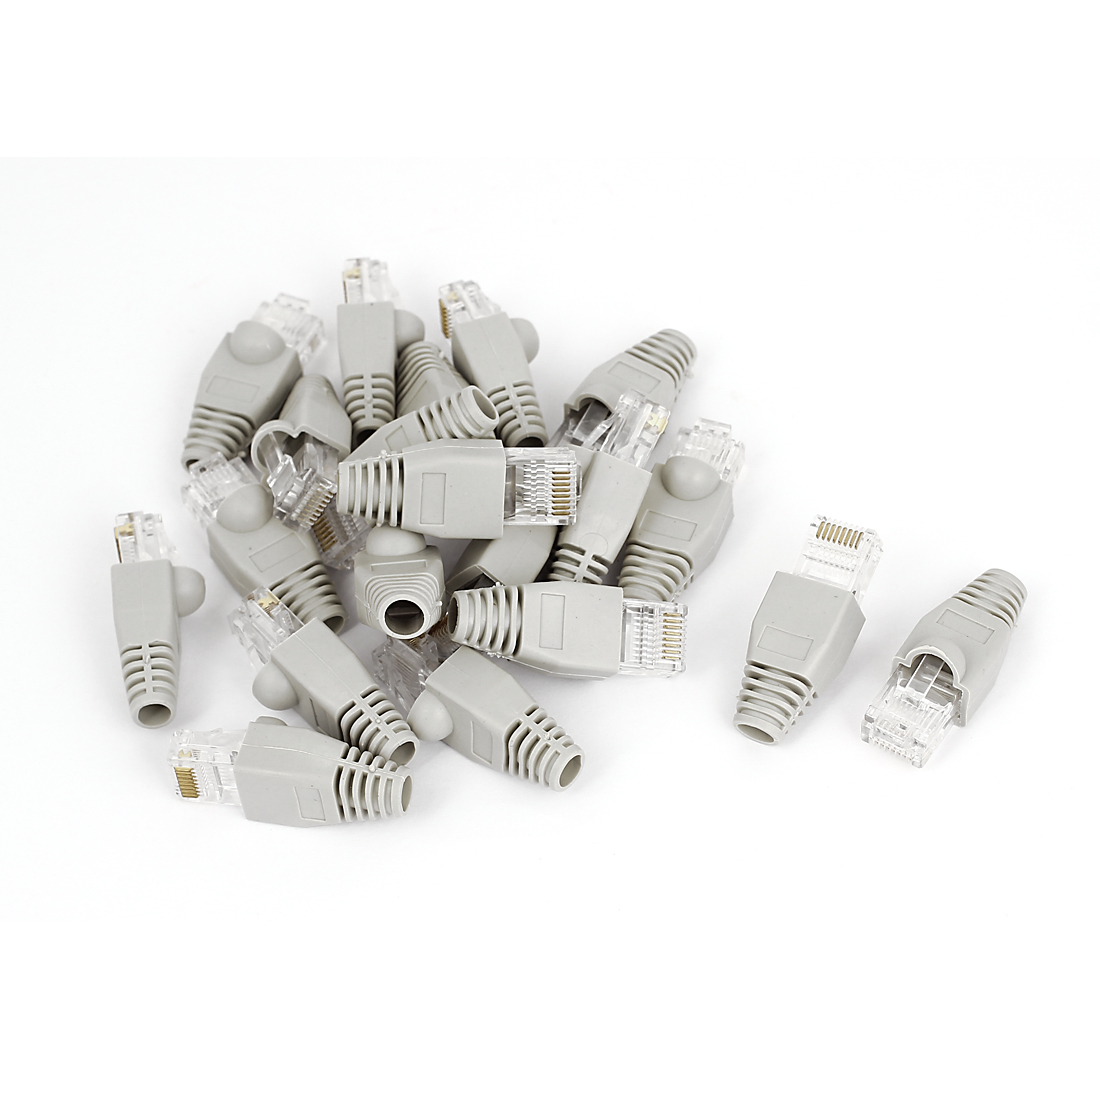 20 Pcs Shielded 8P8C RJ45 End Modular Network Connectors w Boots Cover Gray